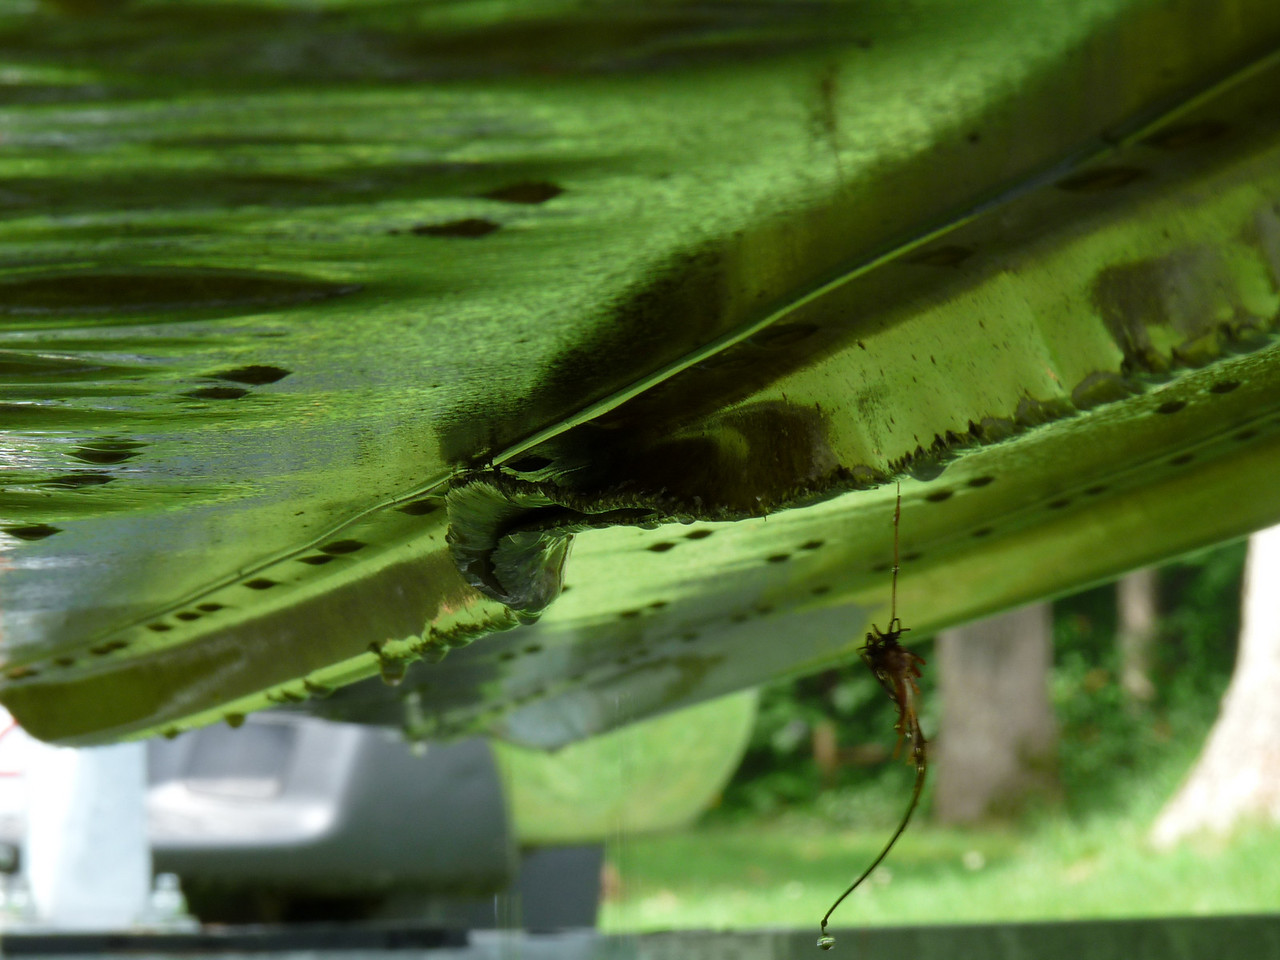 "Check this out!!!<br /> This is a boat. Kelly's boat. The bottom side of Kelly's boat with a 9 inch tear!  If you have a minute, it's a fun little story....<br /> <br /> Unfortunately, this isn't the only damage it suffered in a storm here this past Friday. As a result of the high winds, it came loose from the dock and spent the night slamming into the rocks on the shore line. (That's not the fun part...It gets better.) Luckily, it was still attached to the mooring so it never went too far. It must have been locked up on the rocks for a while. Friday, it seemed all was good as the propeller wasn't damaged. That night, Kelly and I decided, on a whim, to take it way out into the lake and watch the sunset. What a great idea and off  we went!  As we sat there, we noticed the bilge pump was running quite a bit more than normal although, the boat had no water in it. When alas  it was good and dark, we started back. We were giggling as we forgot to leave any outside lights on at the lake house and had to really pay attention to where we were going. All of a sudden, the motor died. Crap! out of gas!! Luckily we were relatively close to the dock so I paddled for all I was worth to get us properly set up, which was a feat as it was very windy and pretty choppy. We were saving the last little bit of gas to bring us cleanly to the dock. When she turned the engine over, it started and then died again right away. Oh dear! We were then being hurled towards the neighbor's dock, back end first! Panic! If only the neighbor was home, they could have helped. Nope. We were completely on our own and completely clueless. After bobbling around the neighbor's dock we finally got things under control enough to realize that all we had to do now was for one of us to manage actually getting out of the boat to walk next door (in the pitch dark) and retrieve the gas can. Good! Got it! Except then we couldn't figure out to get the gas into the boat. Meanwhile, the bilge was running and running. We couldn't leave the boat tied there as their dock took quite a hit from the storm itself and we doubted it could handle this big of a boat. I finally, after much procrastination and a ton of laughs, stripped down and jumped into the deep dark night water of Lake Assawompsett, swimming (hard I might add, with the chop) and pulling the boat back to it's proper place. That was it for that night. That was enough.<br />    It wasn't until the next day when Kelly's husband went into the water to inspect the boat that the gigantic hole was found. He bailed for a bit and all was well until yesterday, Sunday. Kelly and I met at the lake house for our walk only to find the boat well on it's way to sinking. We knew it was bad when we arrived there and there was a duck in it!   (here's a pic of Donald duck)... <a href=""http://hocusfocusd70.smugmug.com/gallery/8095536_9i72c#603641724_y79RD"">http://hocusfocusd70.smugmug.com/gallery/8095536_9i72c#603641724_y79RD</a> <br /> The bilge pump had quit and the boat was now filled with ankle deep water. We bailed and bailed. Finally, another neighbor (gotta love neighbors!) came and hauled the boat out of the water. Which brings me to this photo....This is what we found. It looks pretty bad. This is the same boat that we were out on when we came across the horse from my last daily. I guess we won't be doing that again any time too soon. Woe is me. Woer is Kelly! <br /> The boat was never out of gas. I t was out of something though. What ever it takes to keep a motor running when the insulating layer is taking on water must run out eventually. That's the long and short of it!"